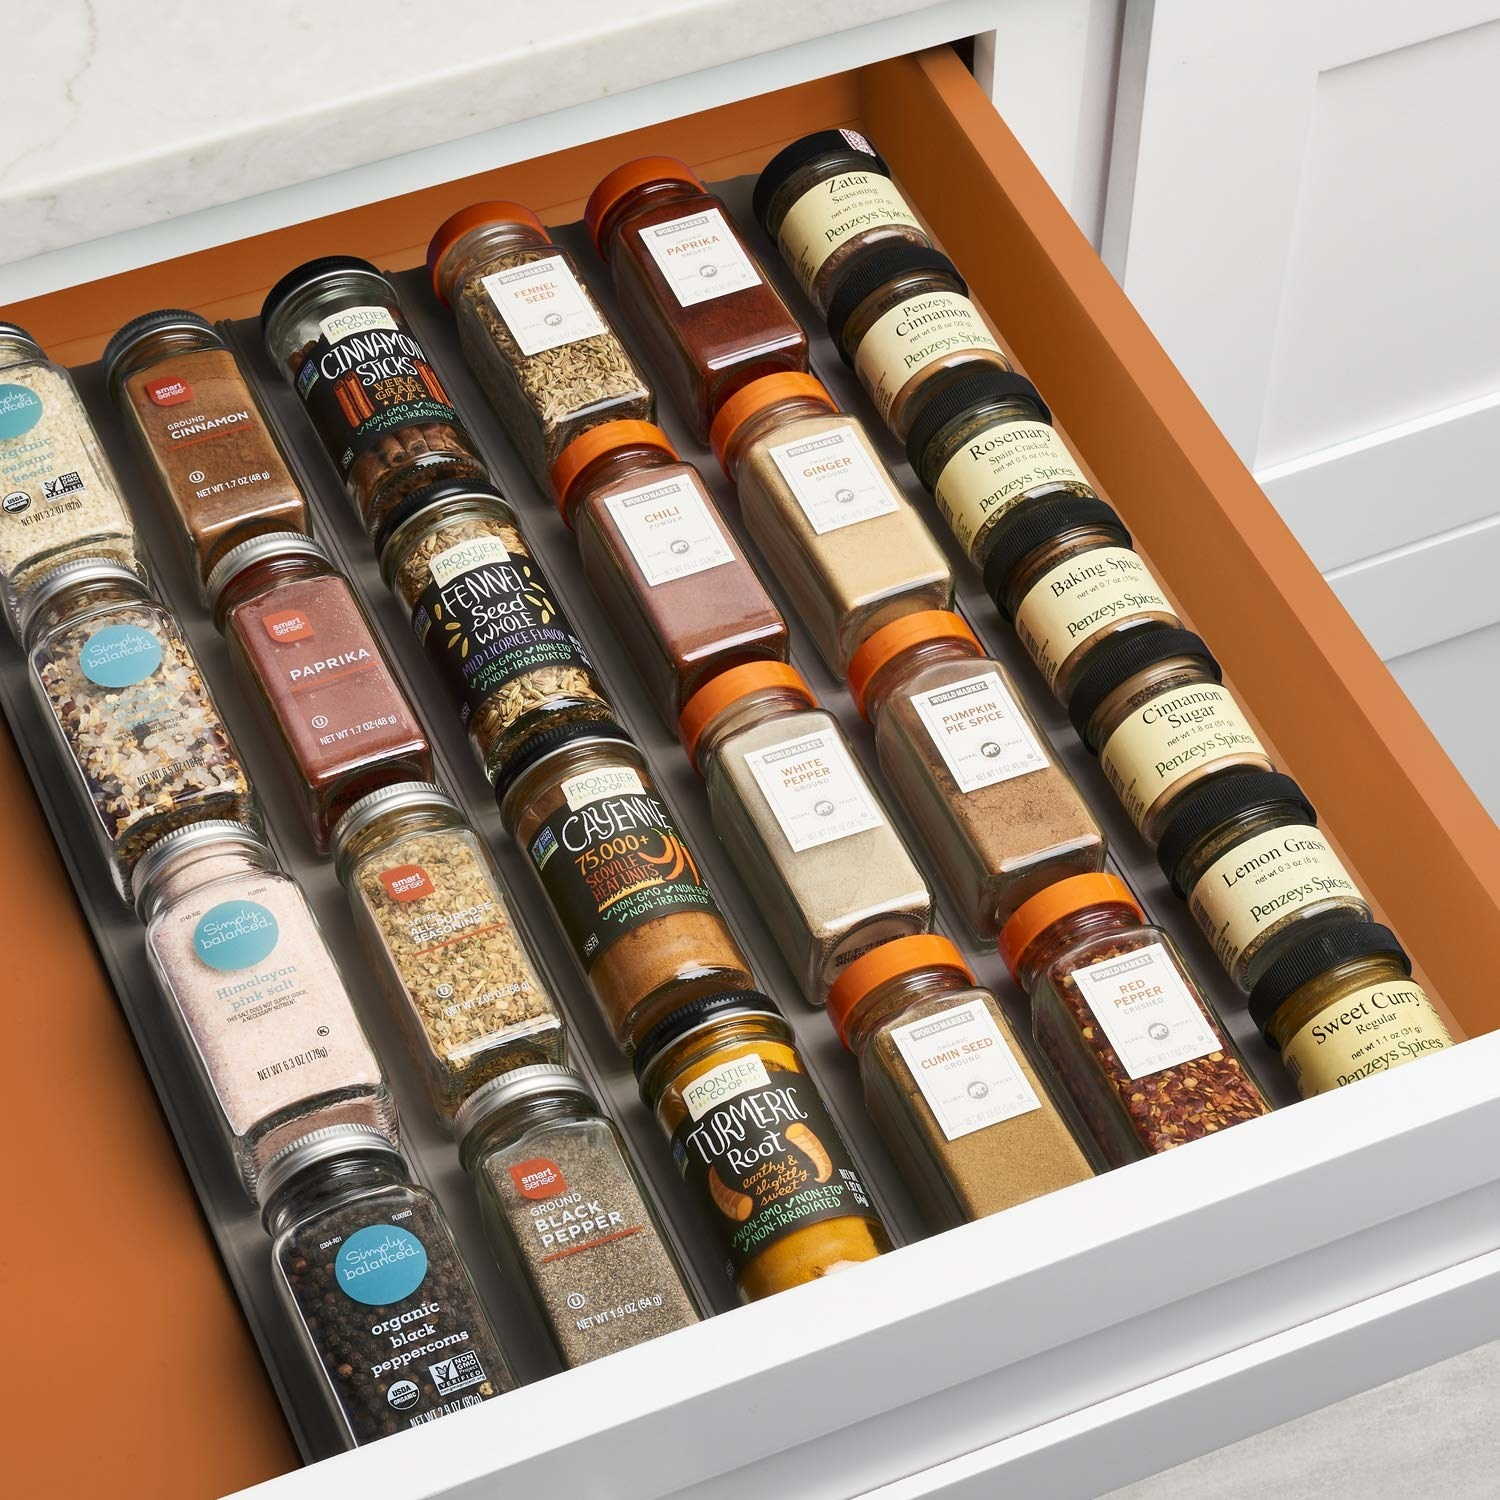 A drawer with six of the narrow rubber mats/columns next to each other, each column with four-plus bottles of spices laid end to end so the overall effect is a flat lay grid of spices